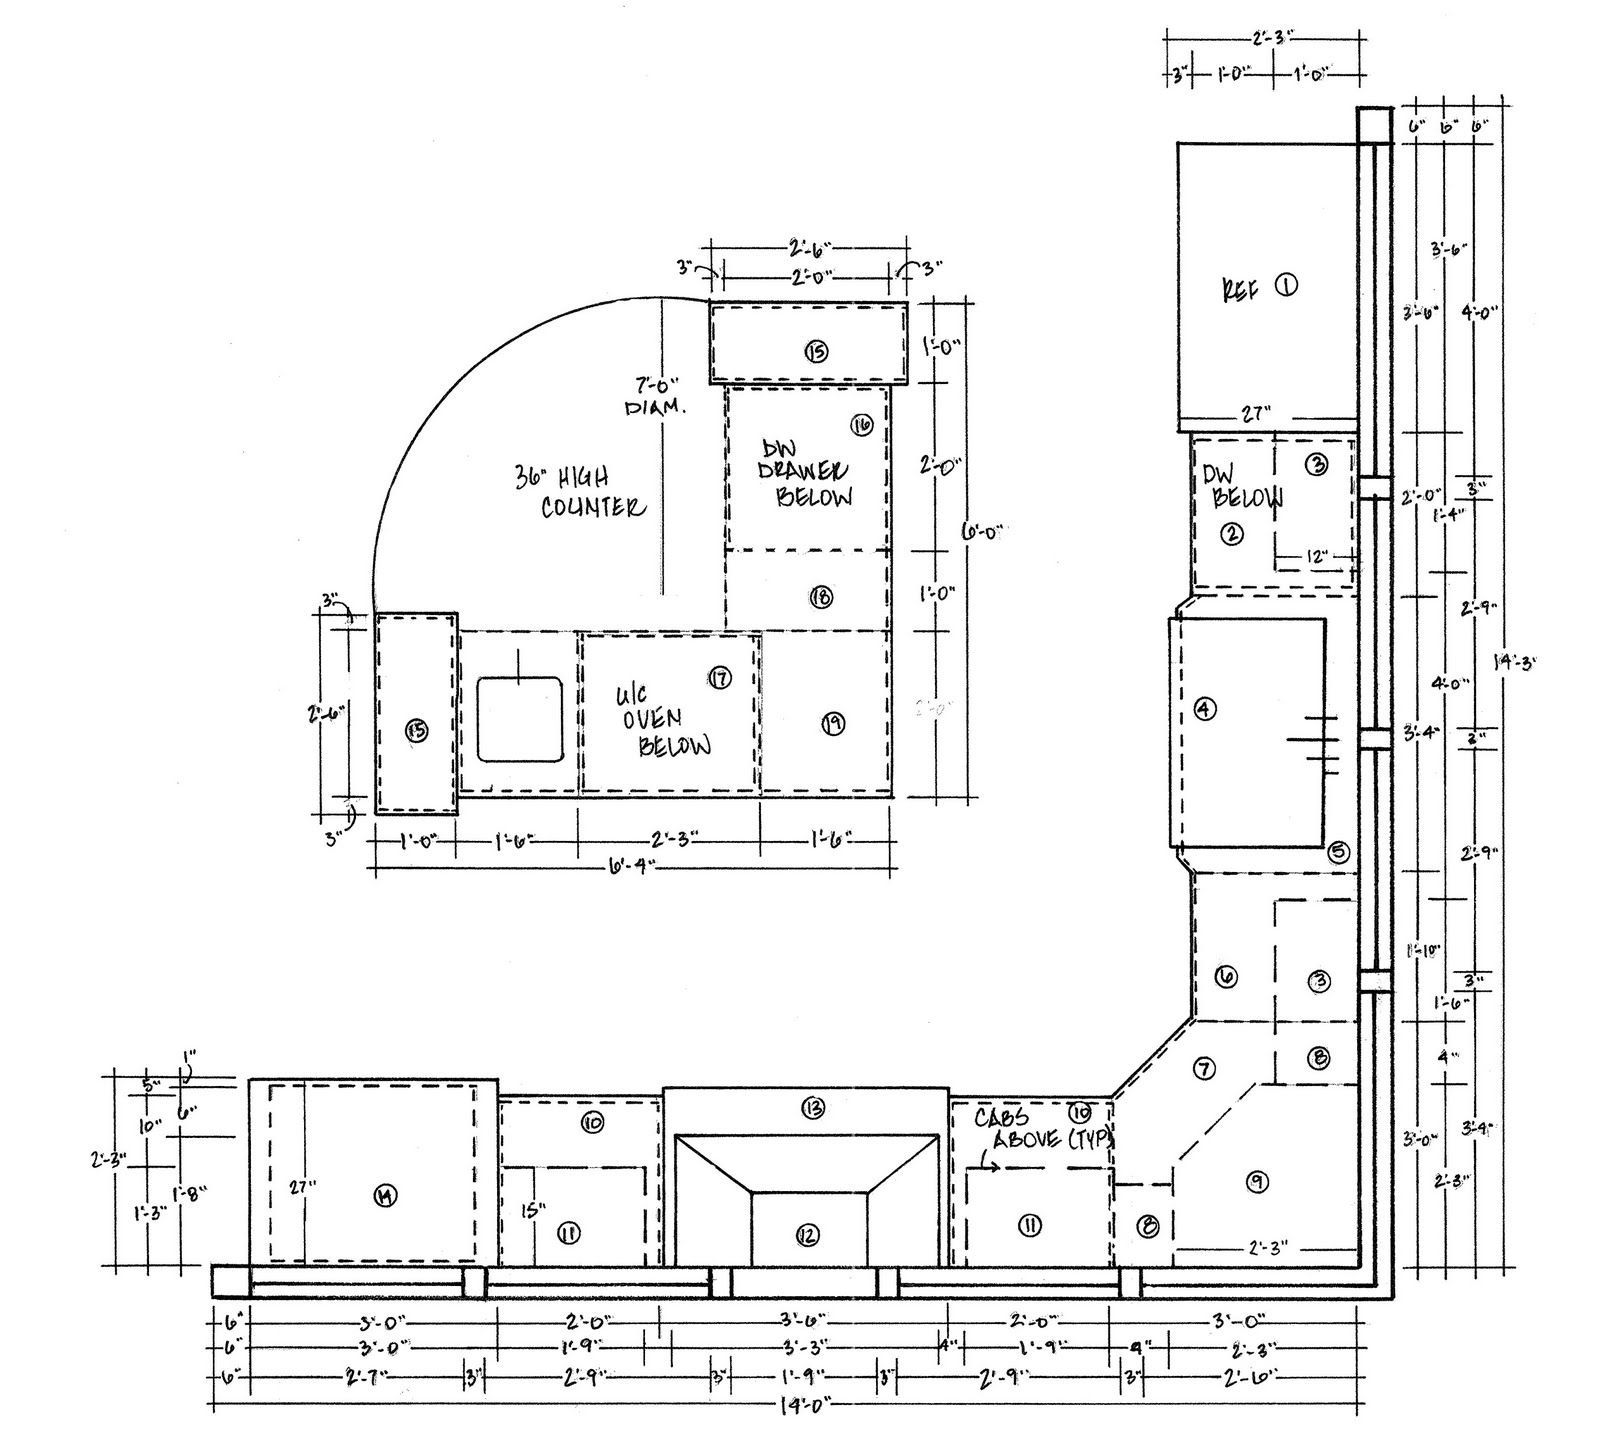 2 Wall And L Shape Island Creative Zoning Clean Hand Drafting And Dimensioning L Shaped Island L Shape Cleaning